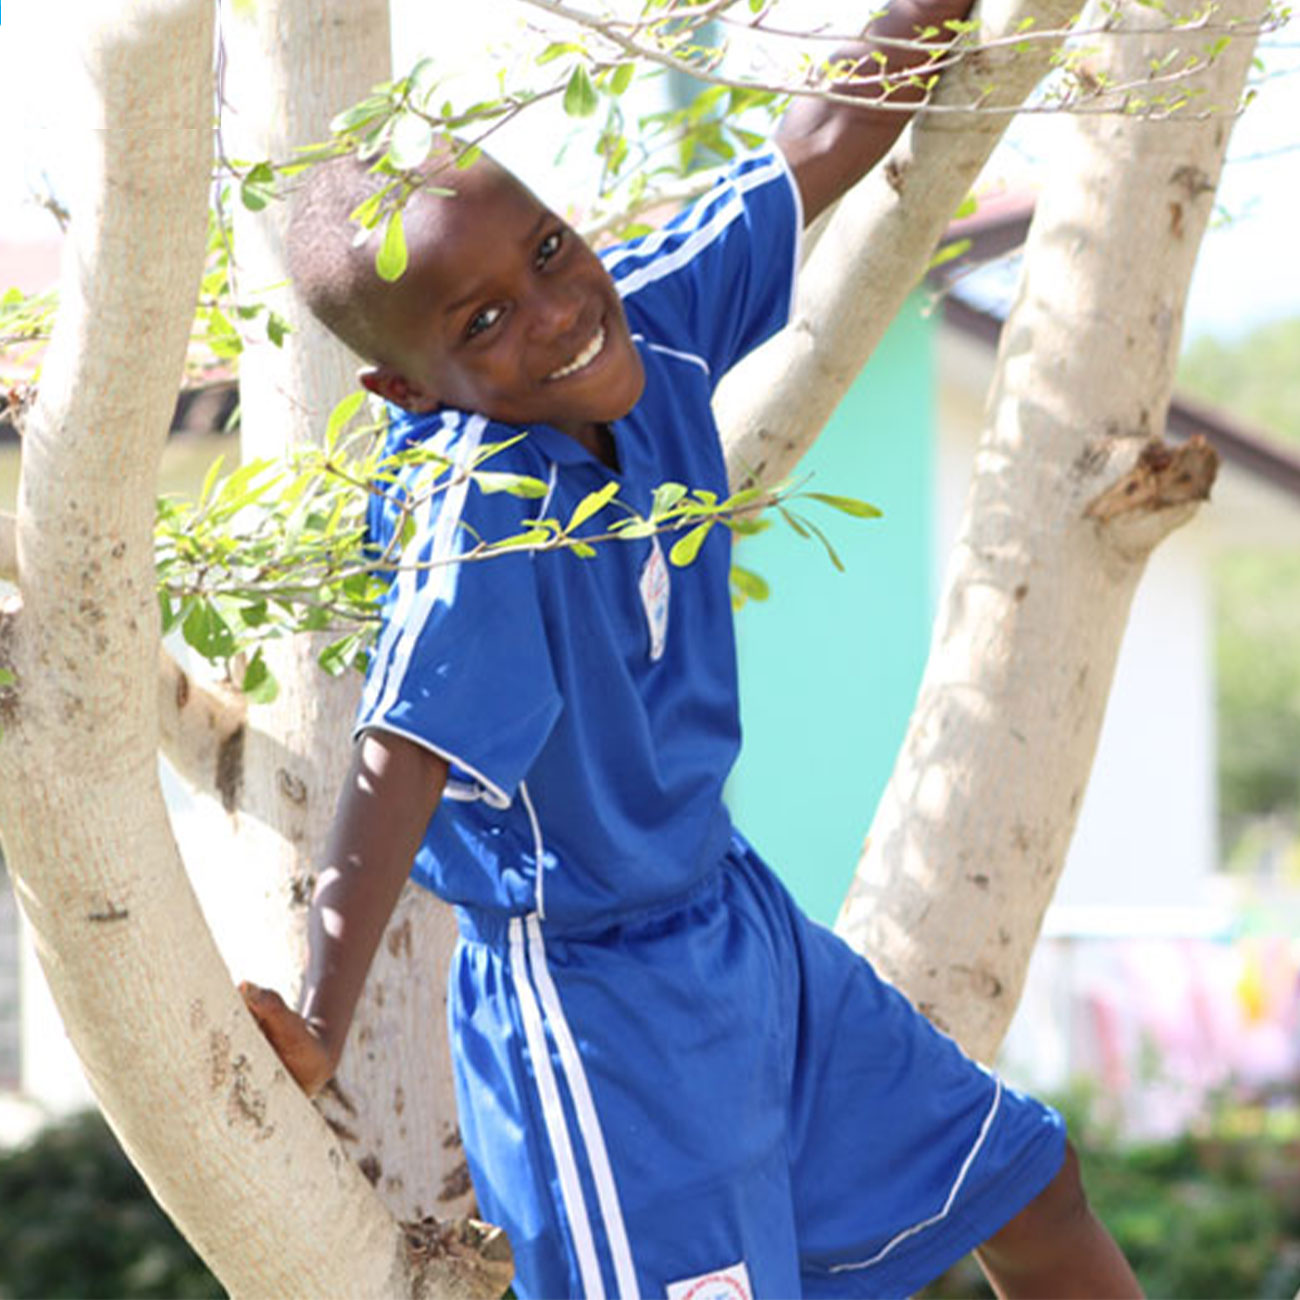 Herbalife Nutrition Foundation child smiling and climbing a tree